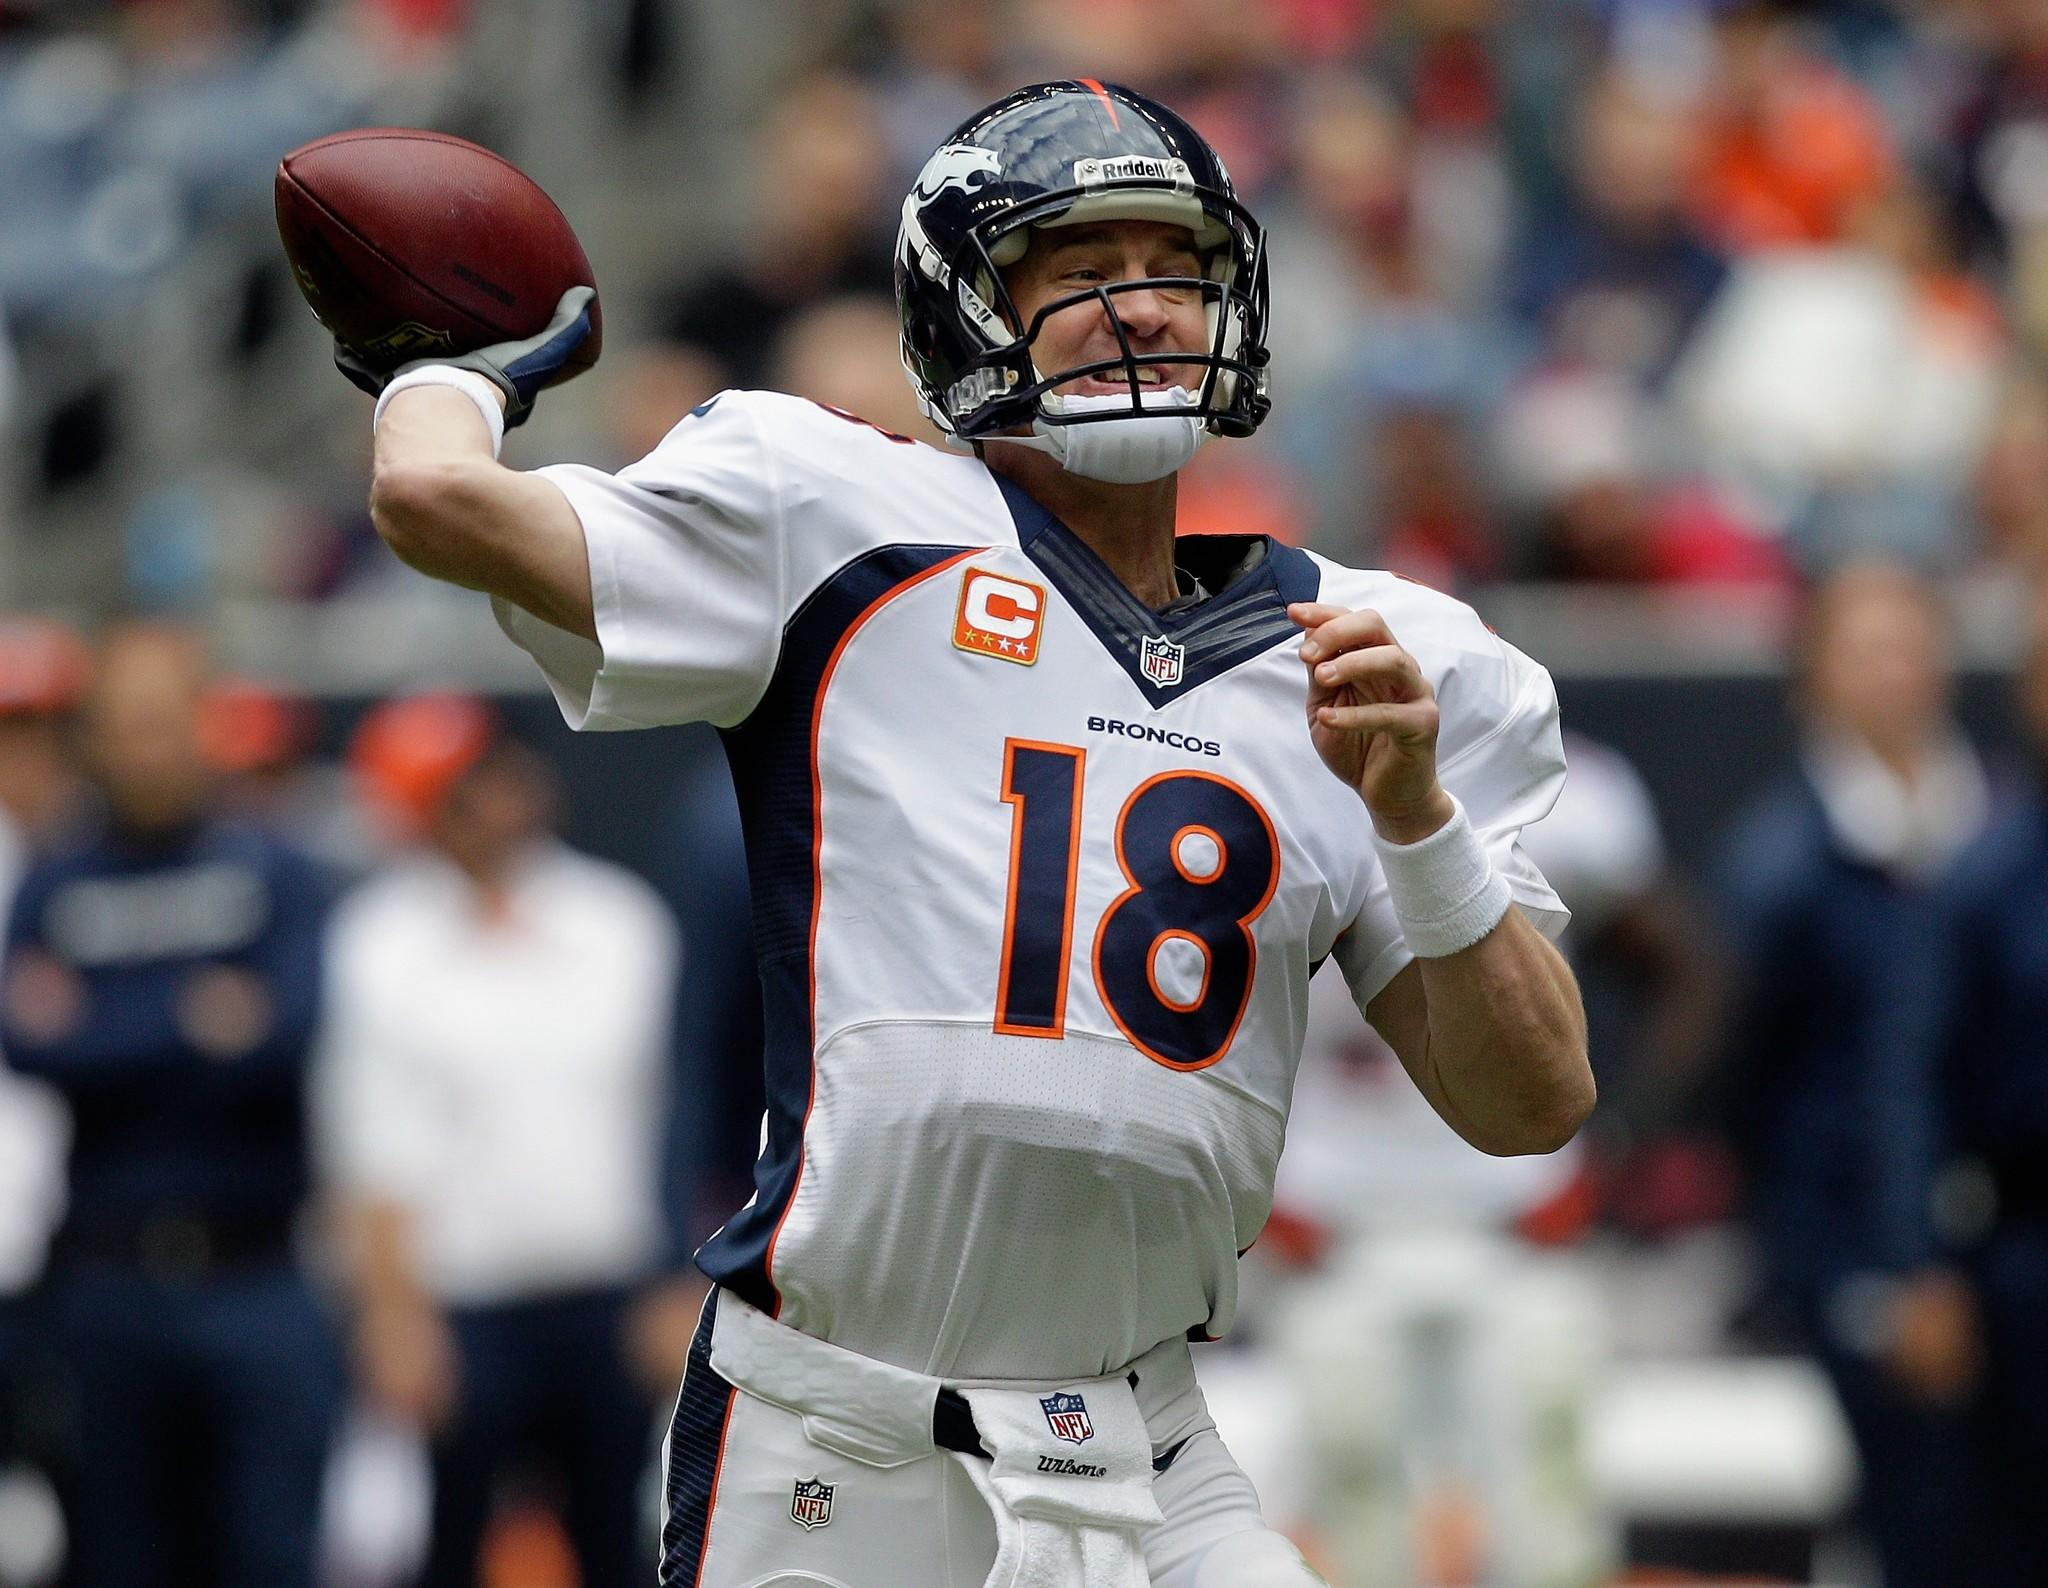 Peyton Manning of the Denver Broncos throws against the Houston Texans at Reliant Stadium.